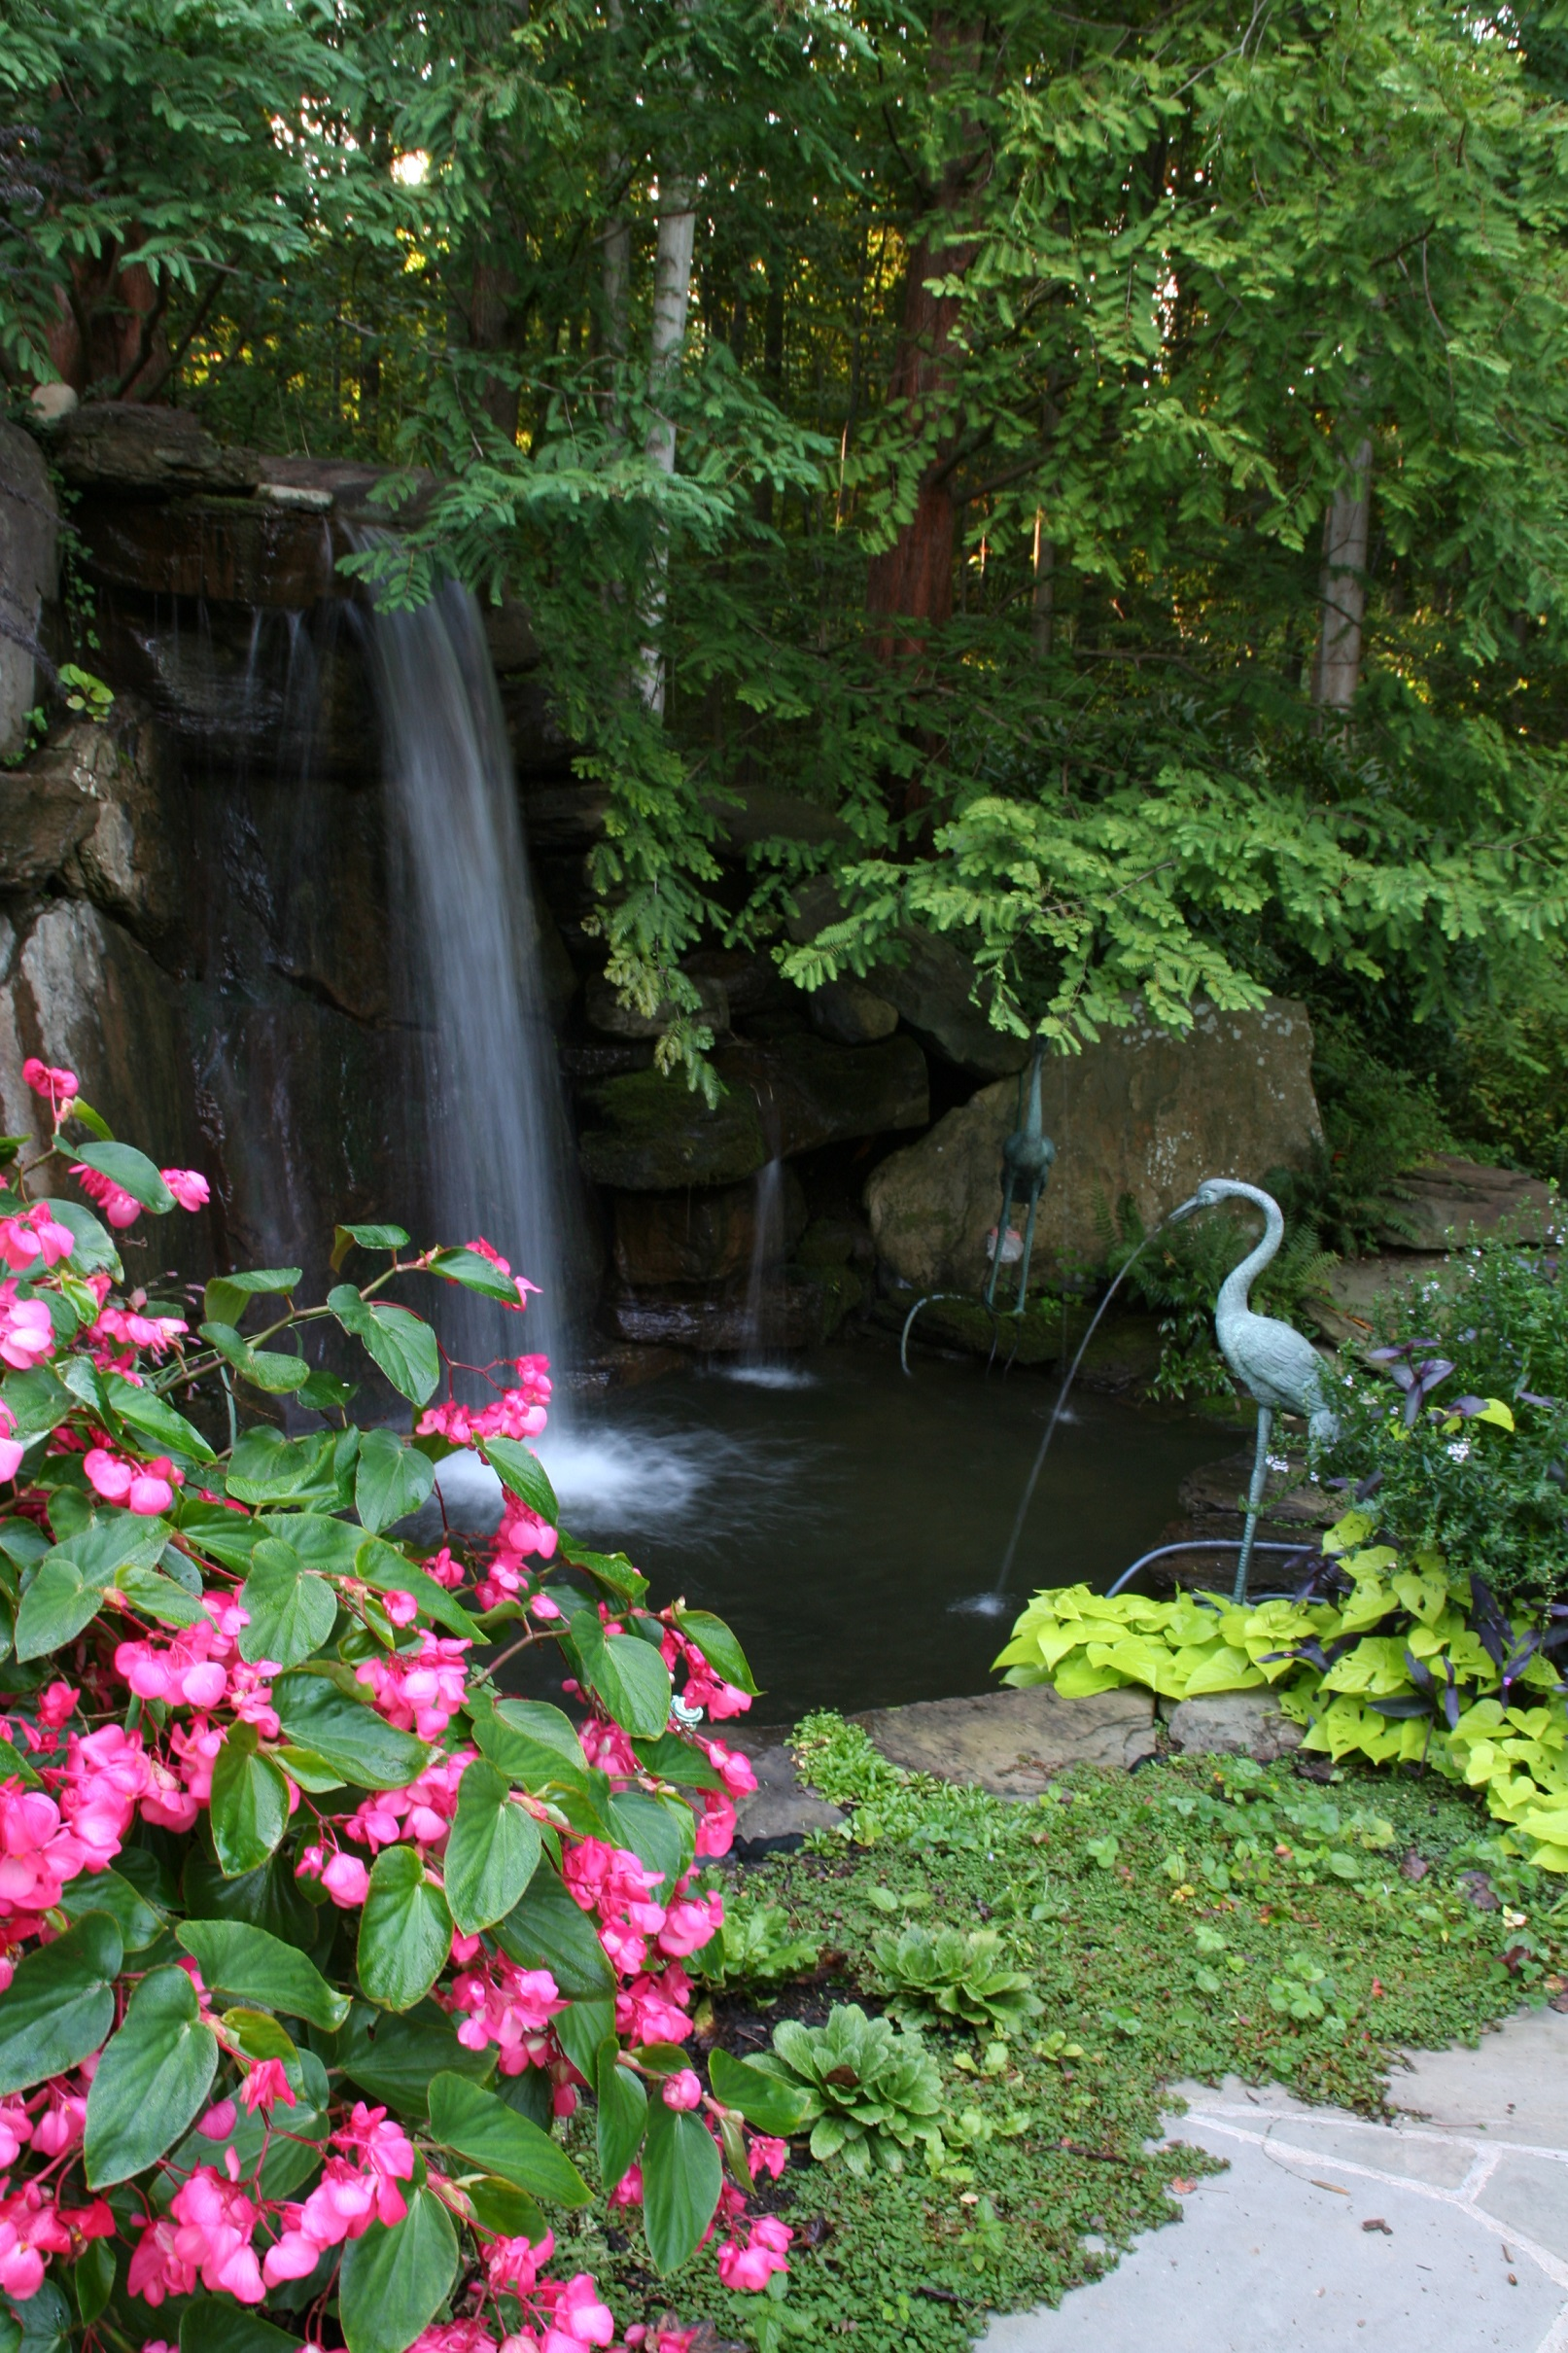 Customized Water Features Can Improve the Natural Beauty of Your Landscape